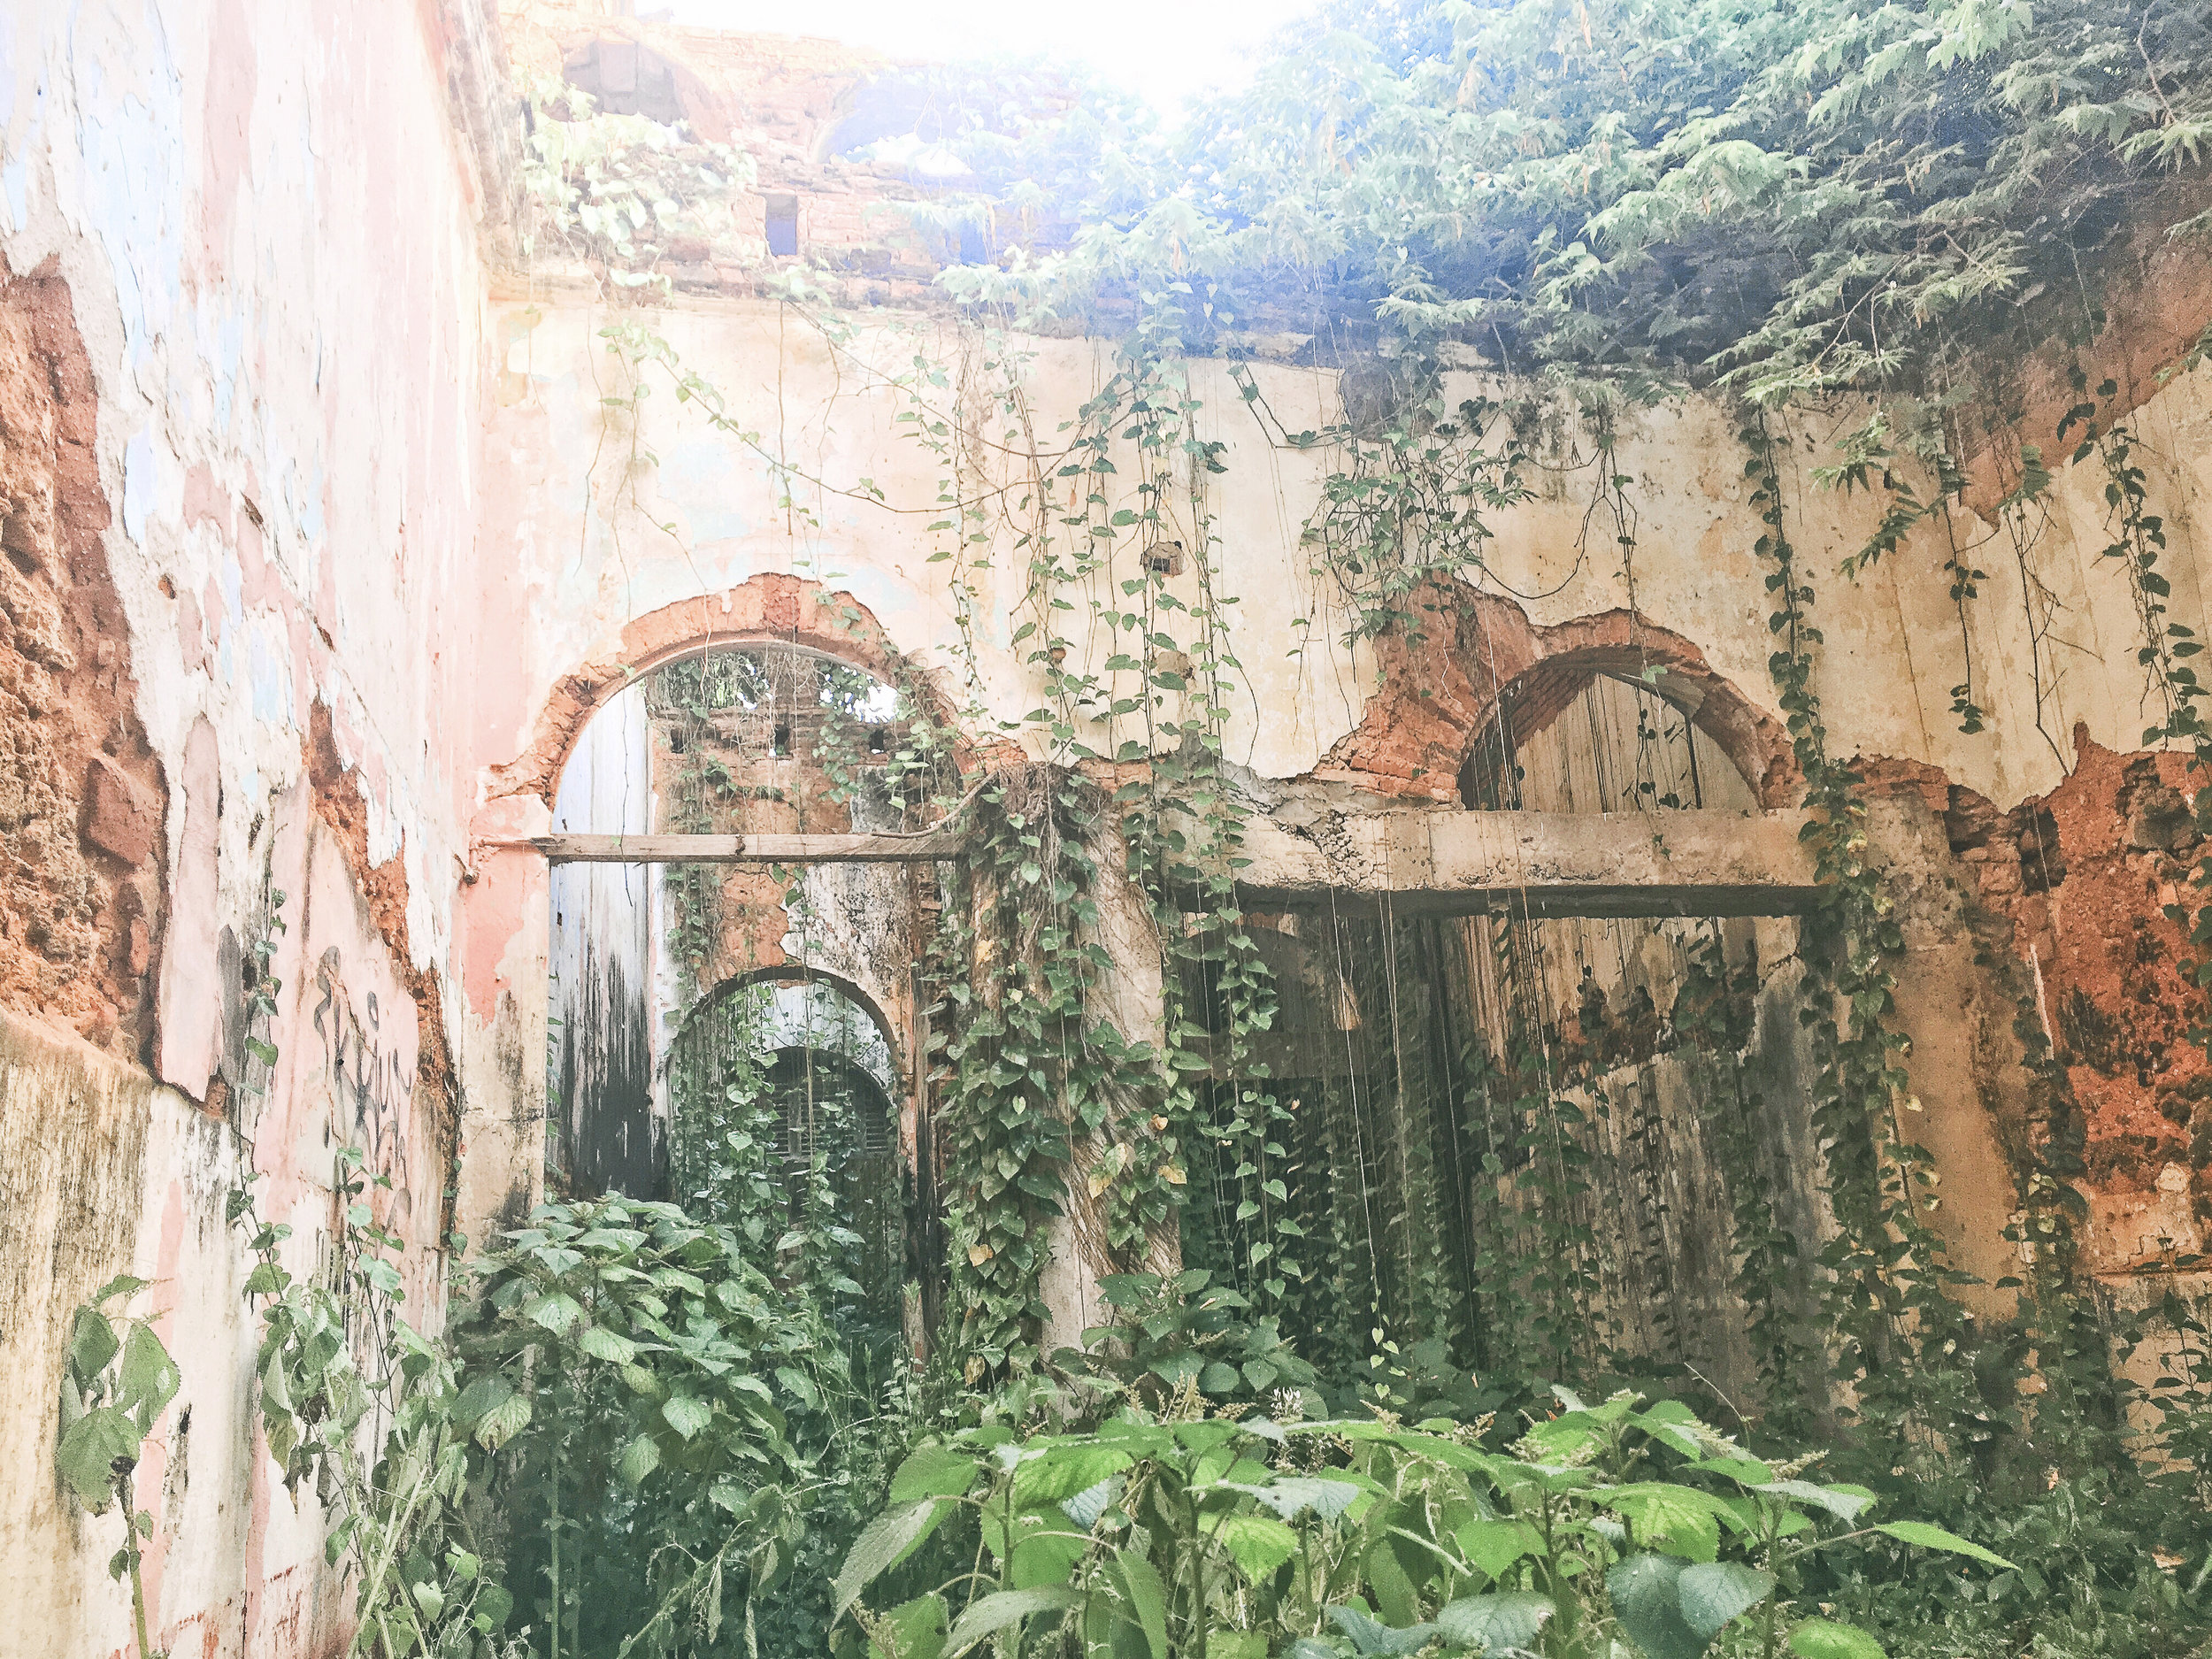 this is the inside of an abandoned apartment complex on a side street in old san juan. the windows were small so there was no way to see this from the outside (we held our phones through the windows to get these shots and luckily didn't drop them)